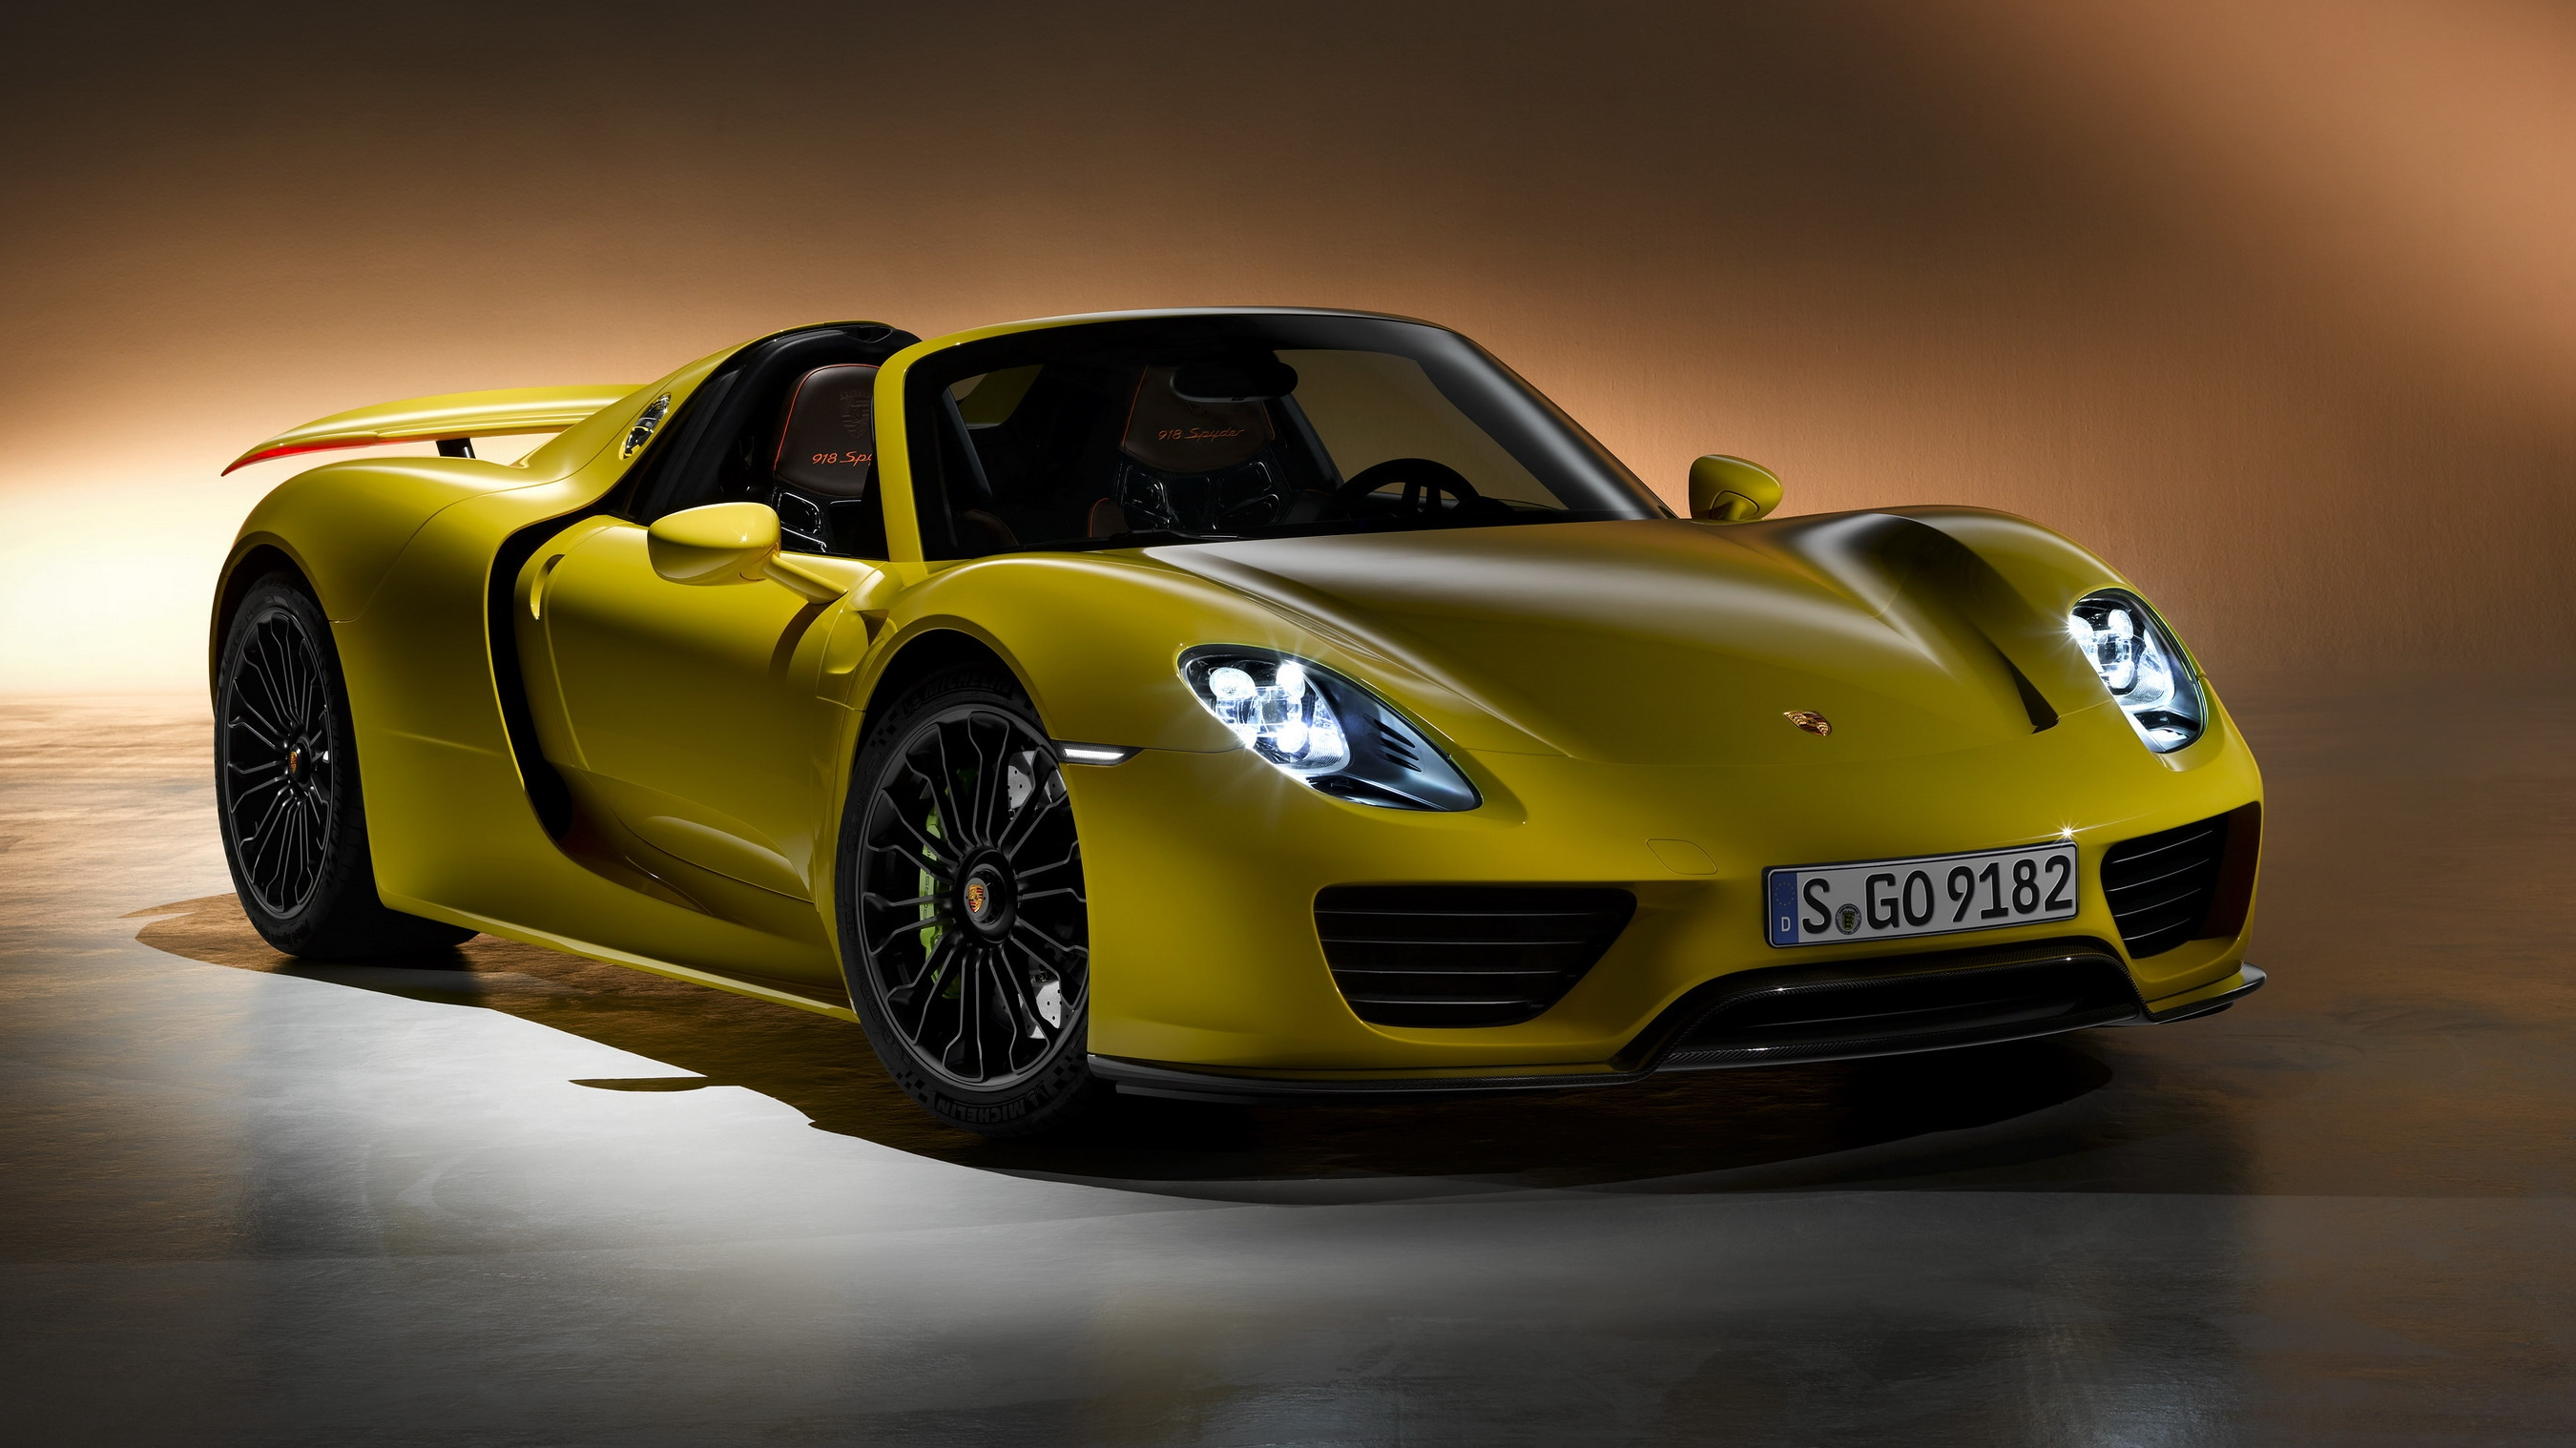 Porsche 918 Spyder To Sell Out By December; 911 Could Get